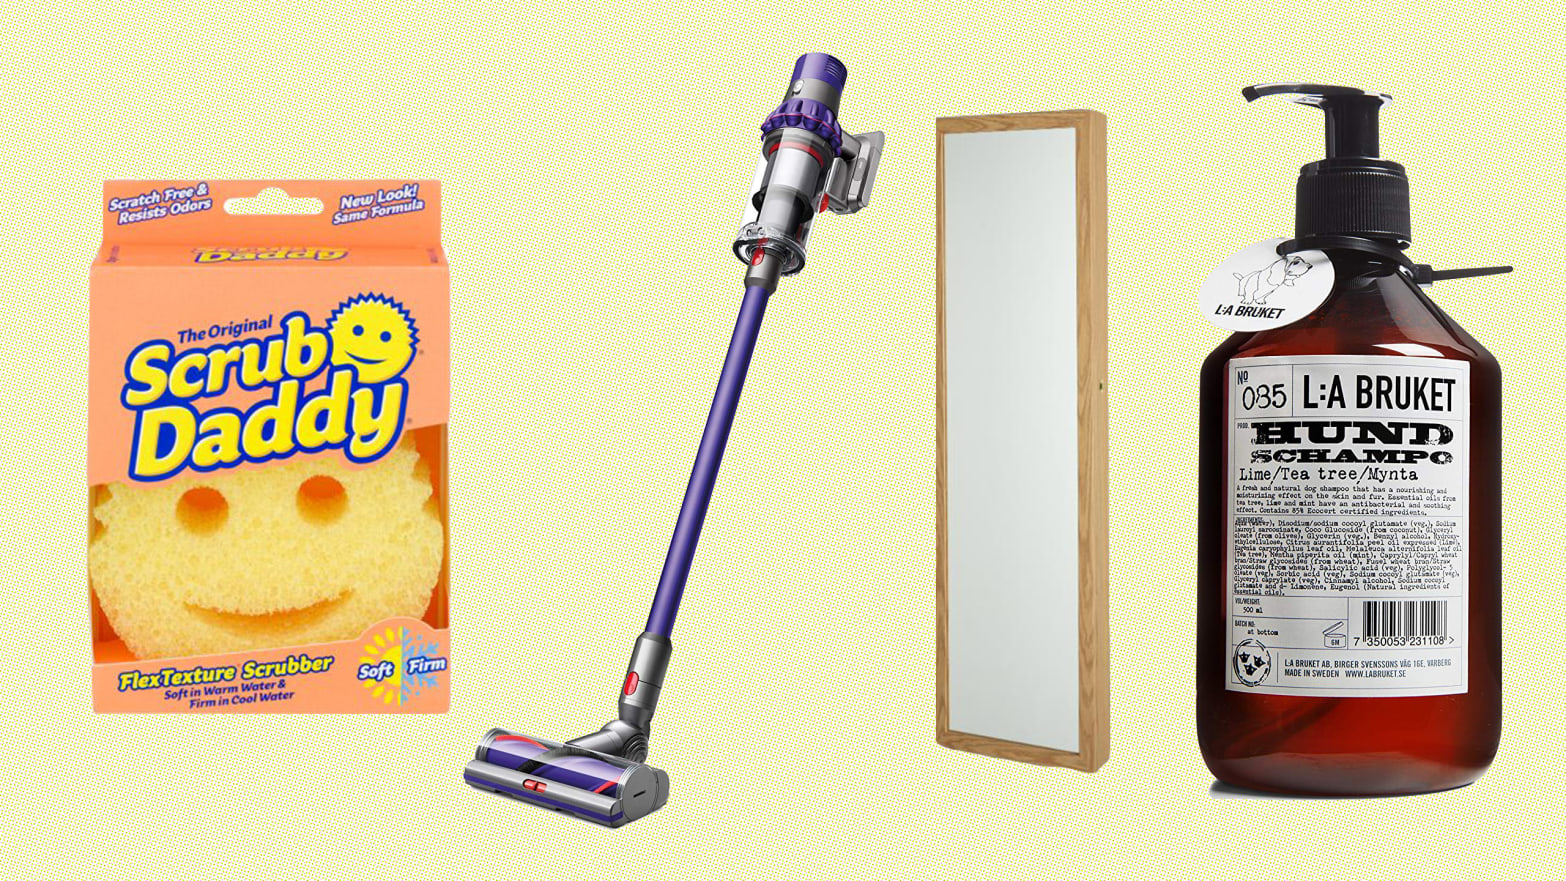 Spring Cleaning Necessities For Organizing, Deep Cleaning, and Maintaining